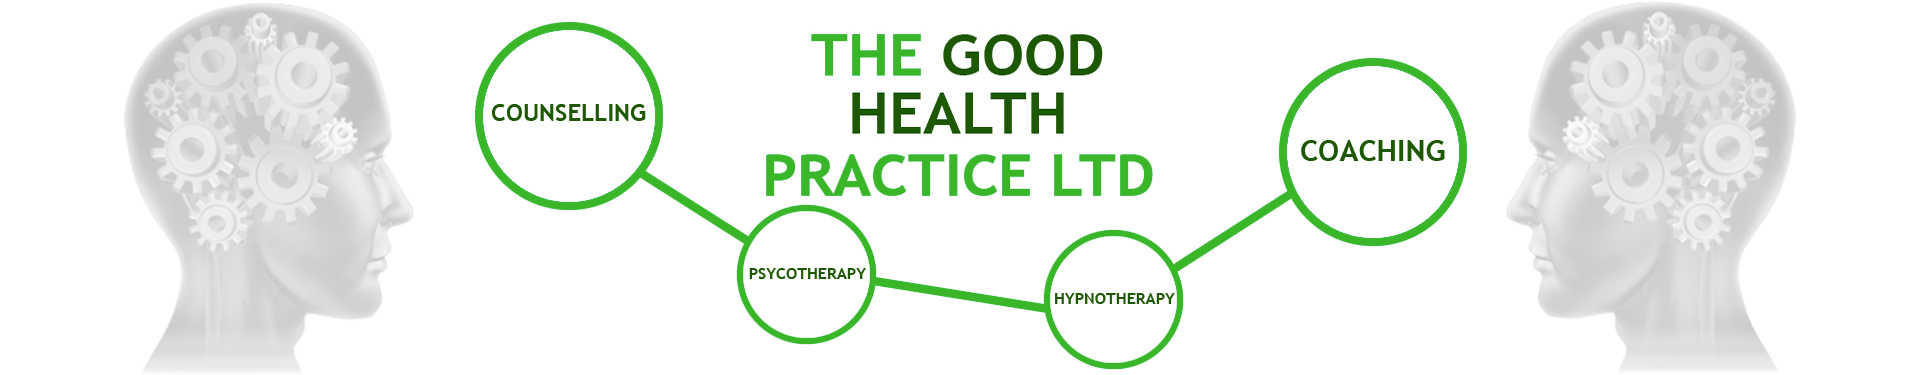 About The Good Health Practice Limited